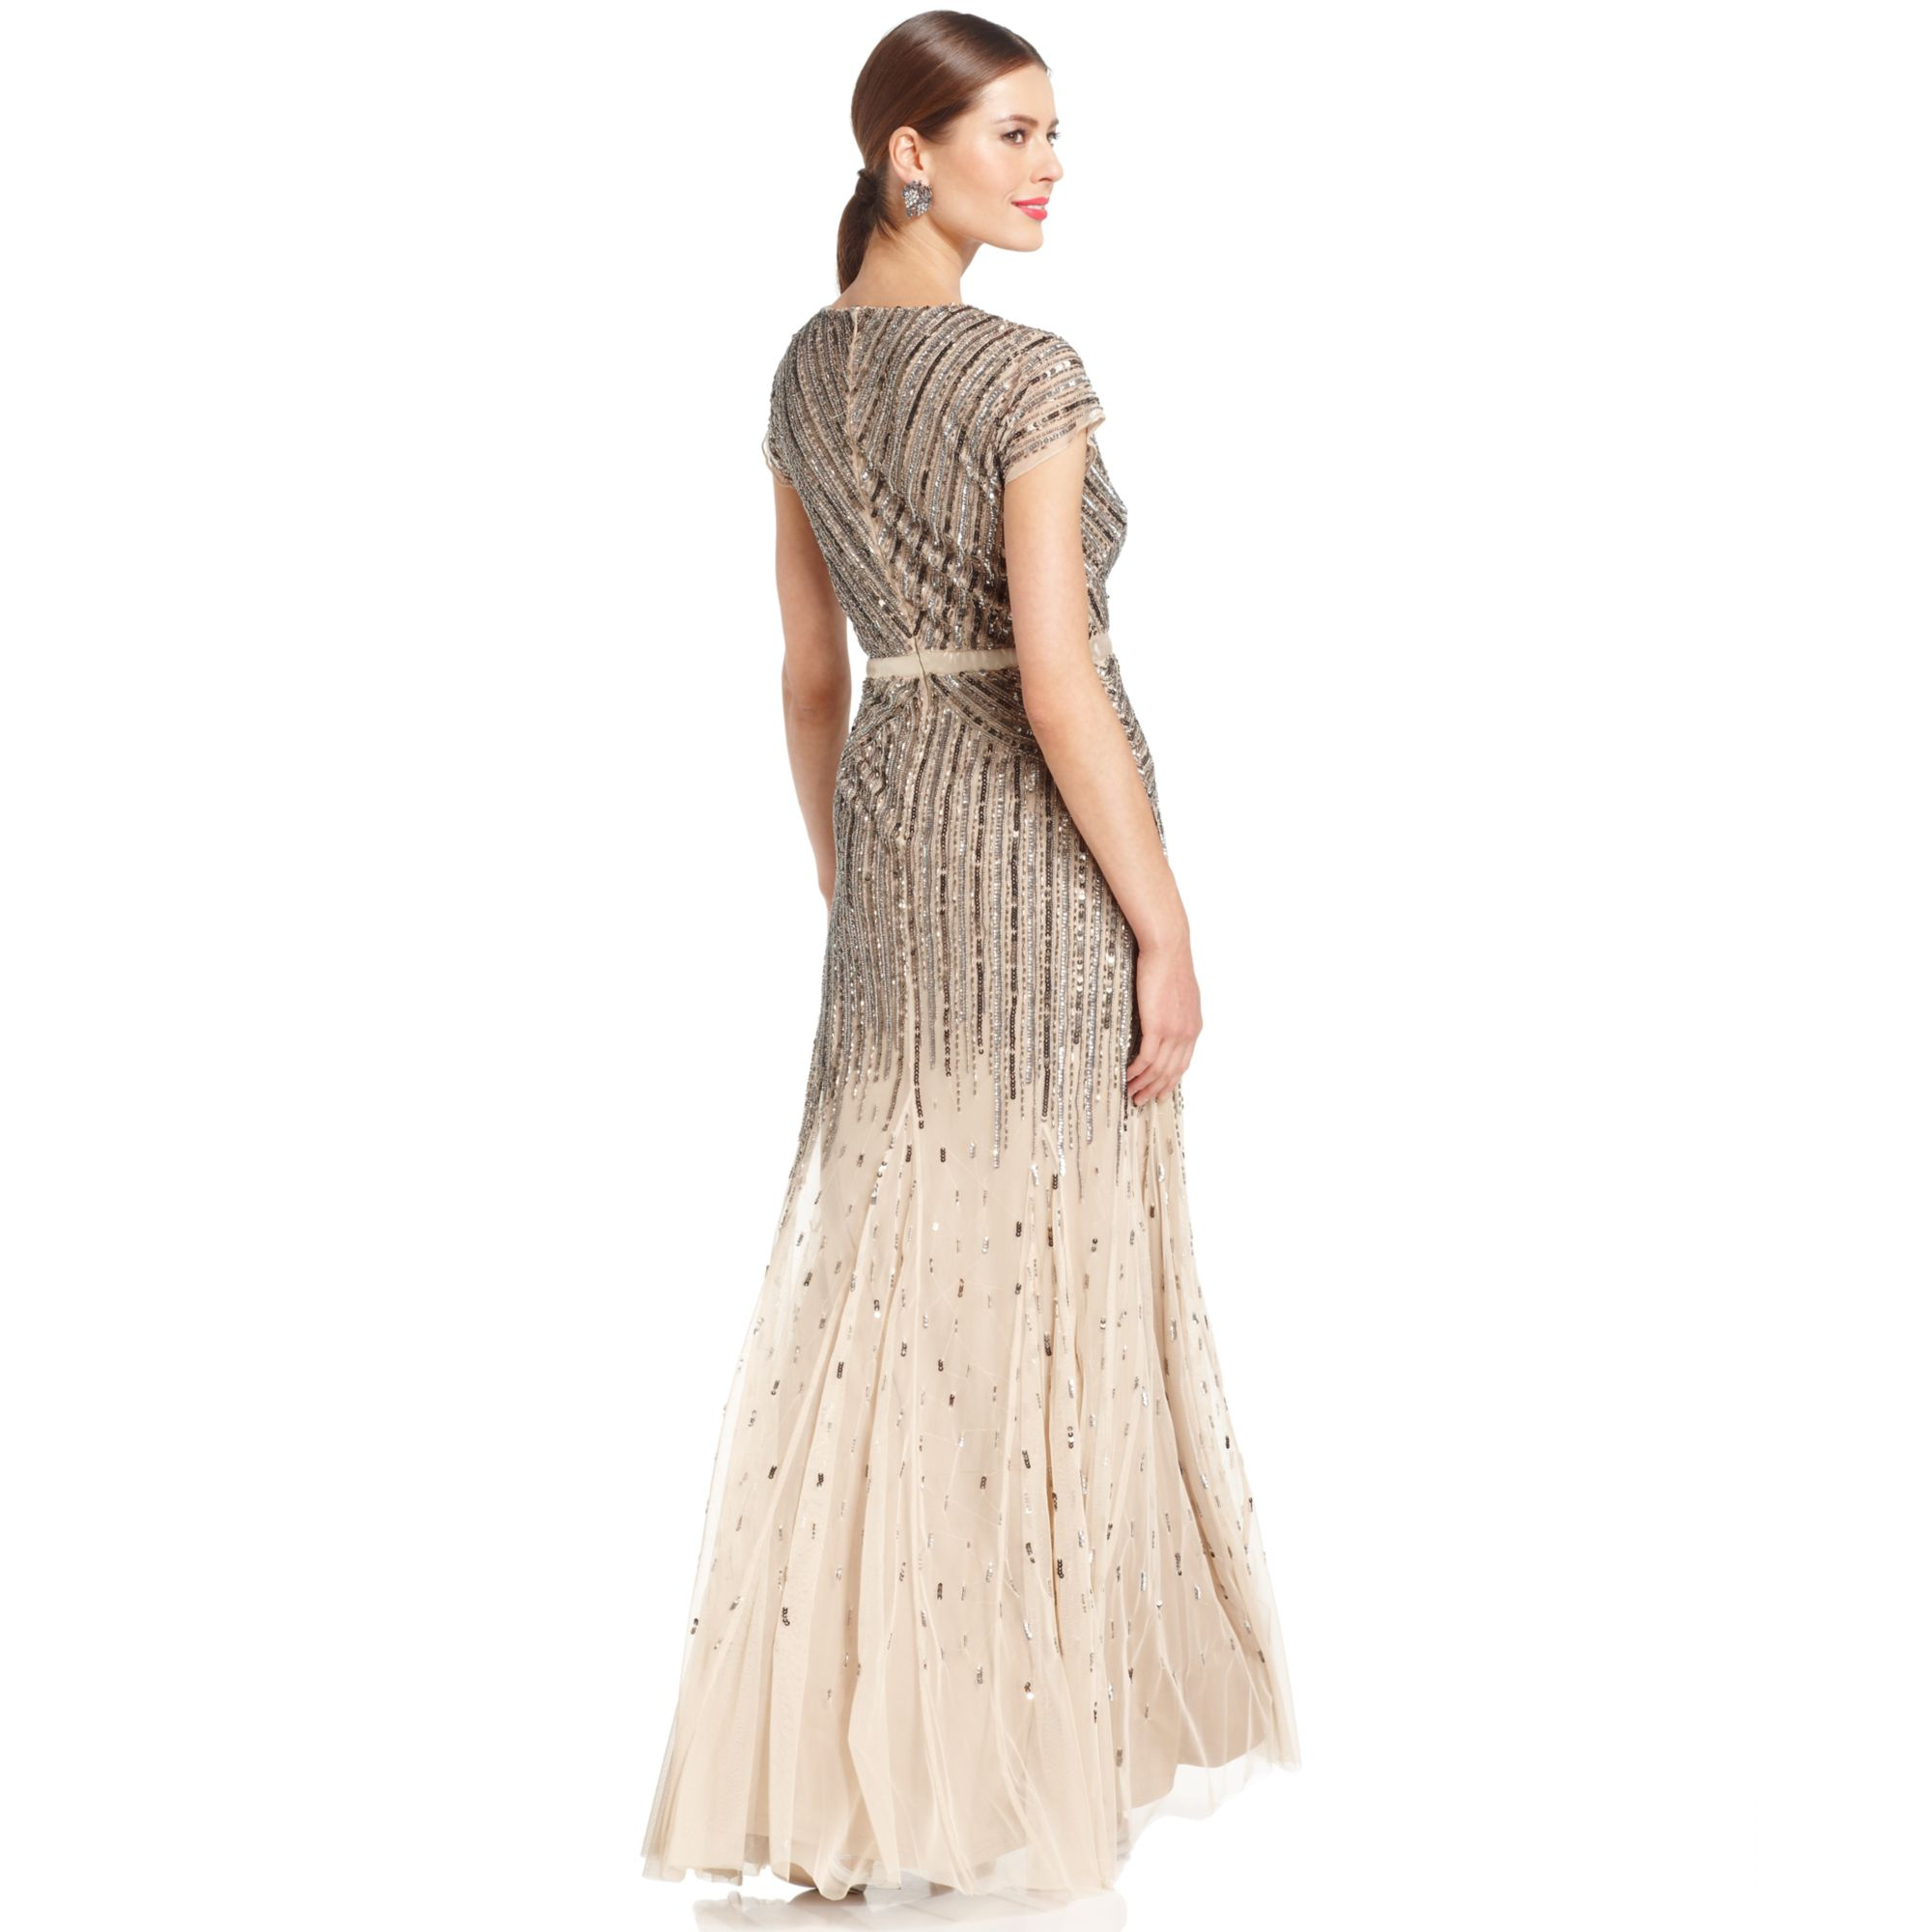 Holidayparty Dresses And Accessories 21 together with Diy Chan Luu Style Bohemian Wrap Bracelet as well Fringe Necklace moreover Adrianna Papell Sleeveless Beaded Blouson Gown Bloomingdales Exclusive Gold in addition Thing. on oscar de la renta beaded earrings